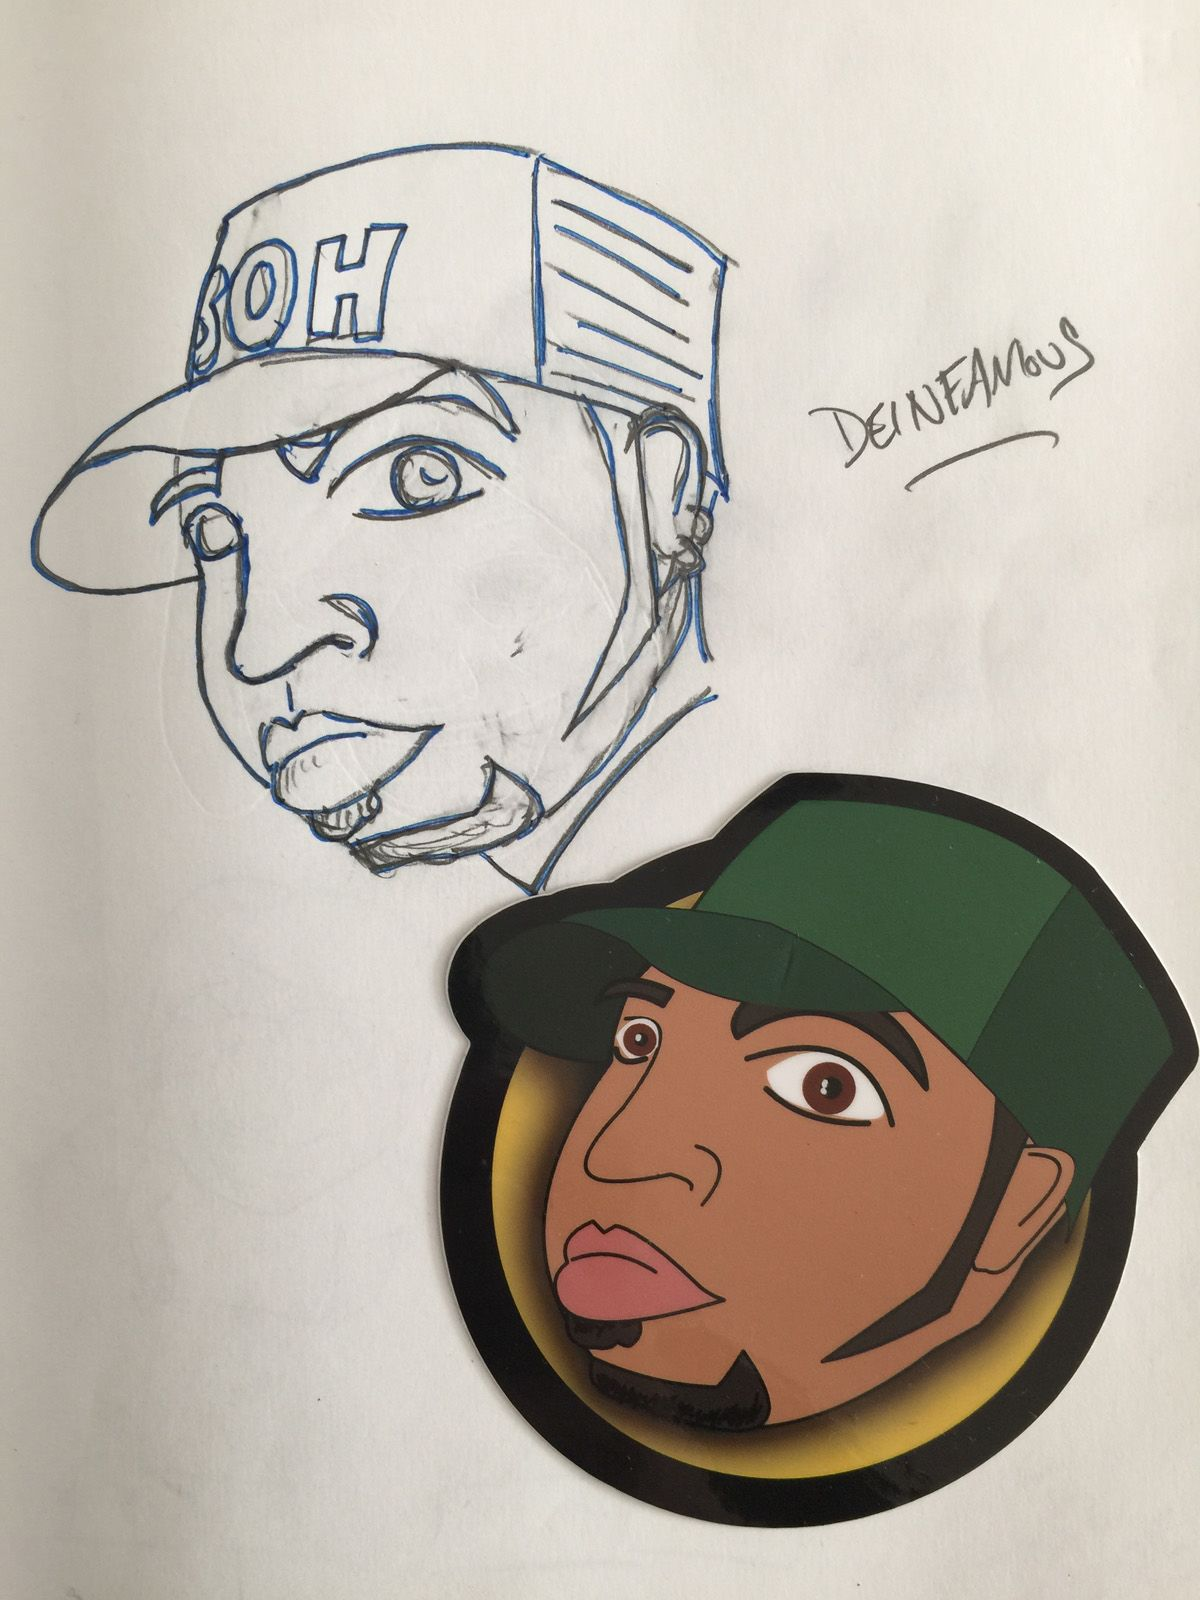 Sticker of DJ Deinfamous next to the original sketch that inspired the sticker